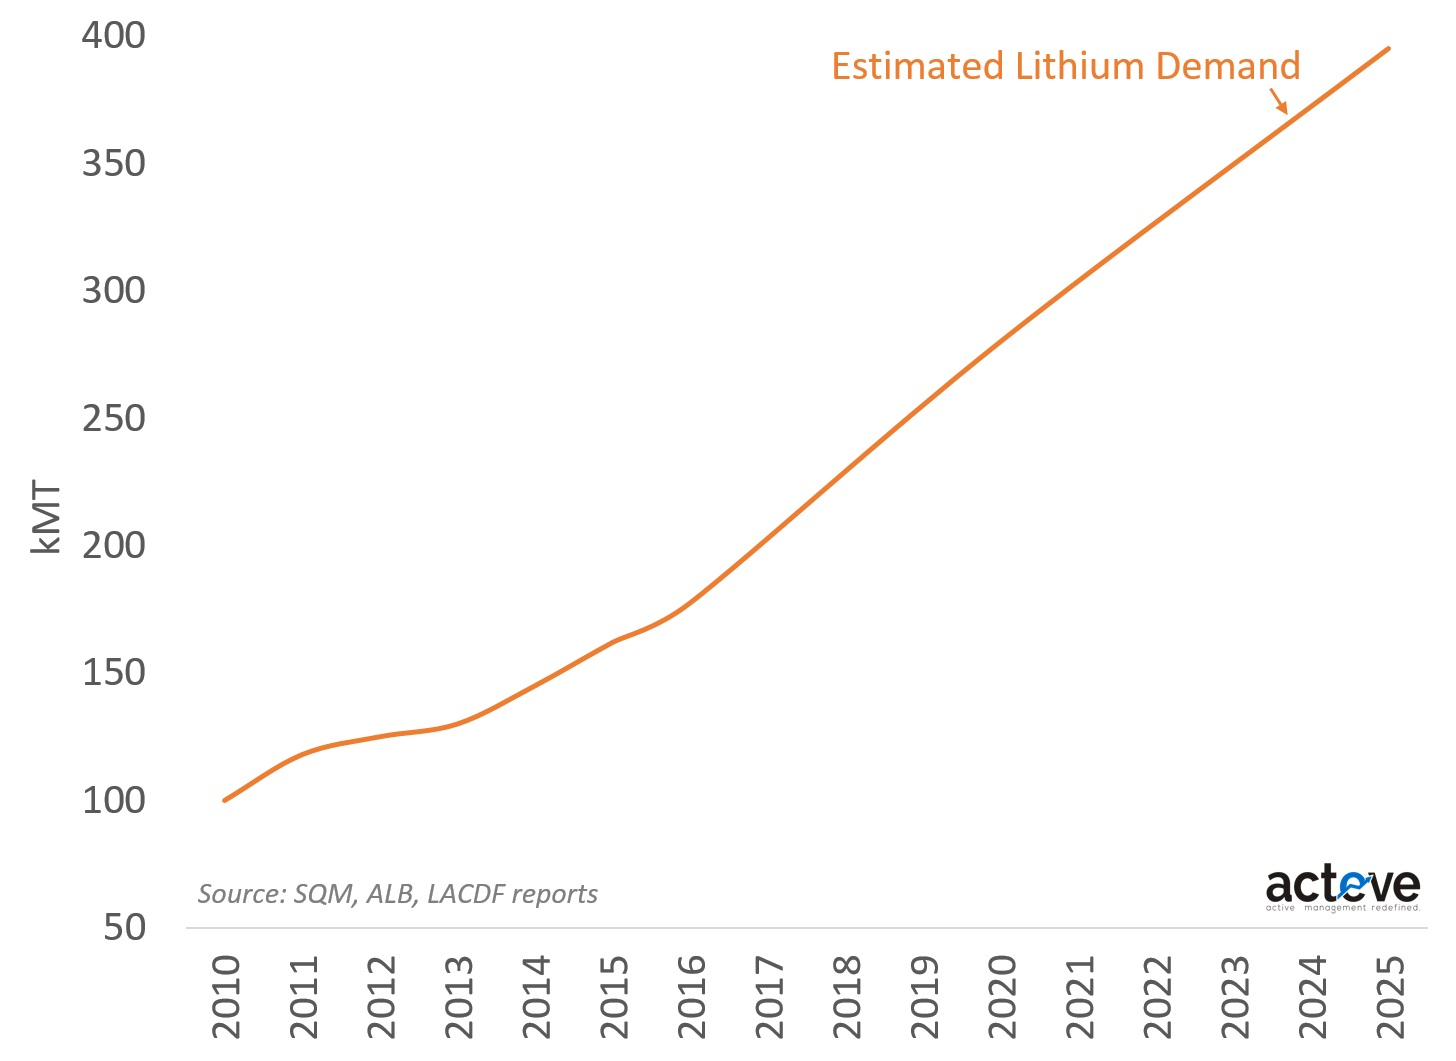 Lithium demand forecast